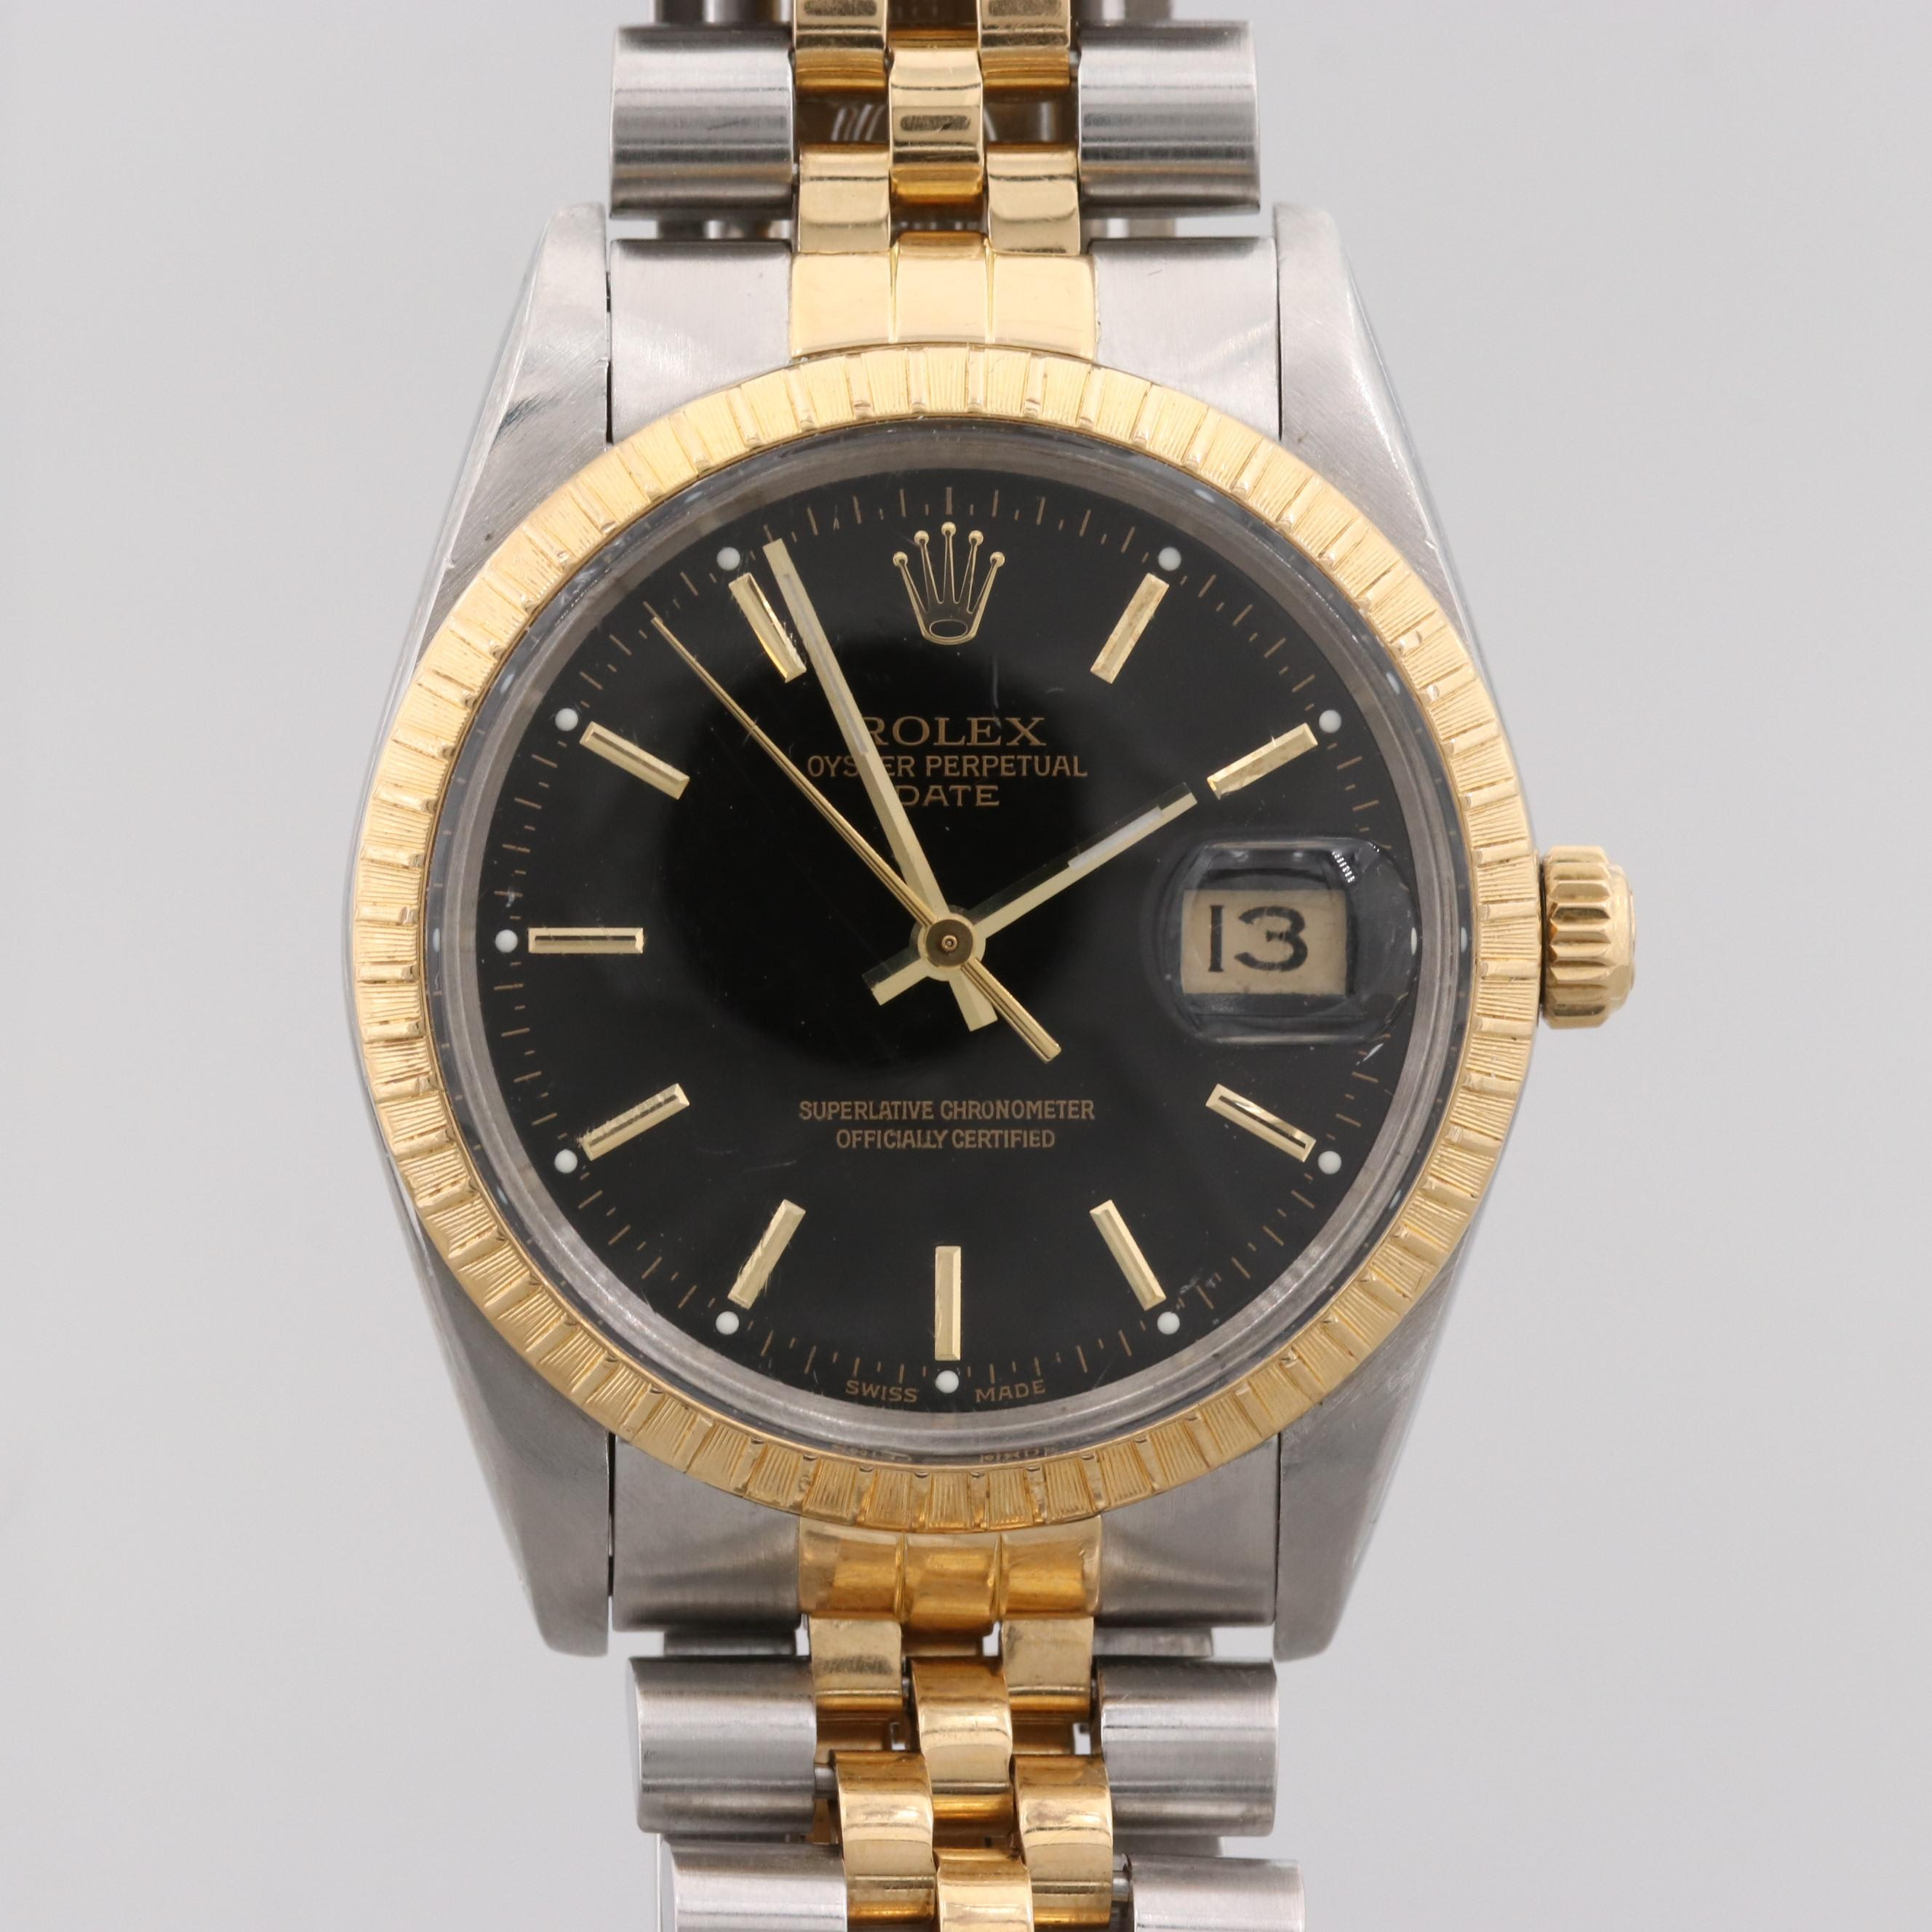 Rolex Datejust Stainless steel and 18K Yellow Gold Automatic Wristwatch, 1986